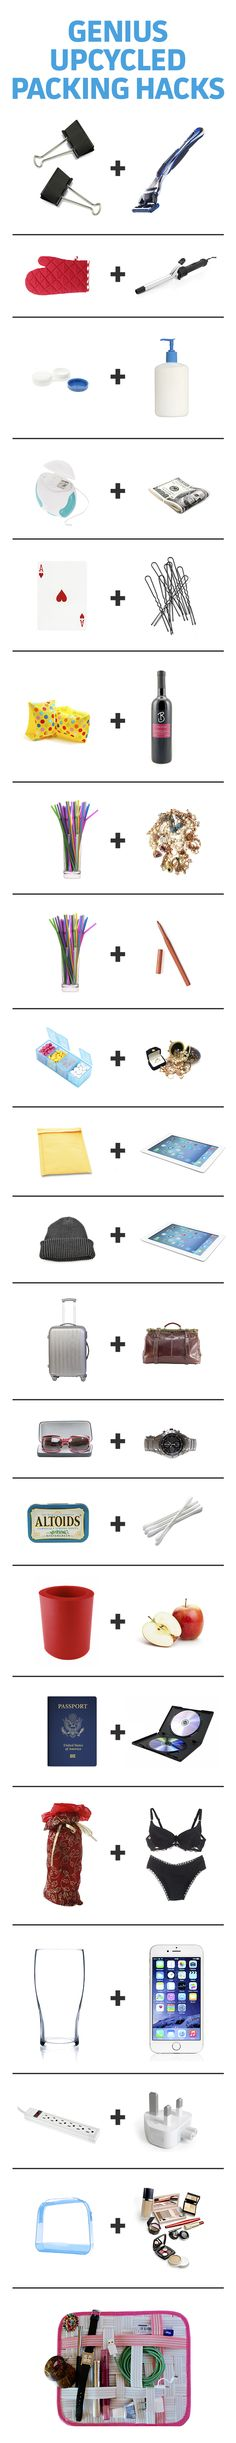 Save suitcase space and make packing a breeze by repurposing these common household items.